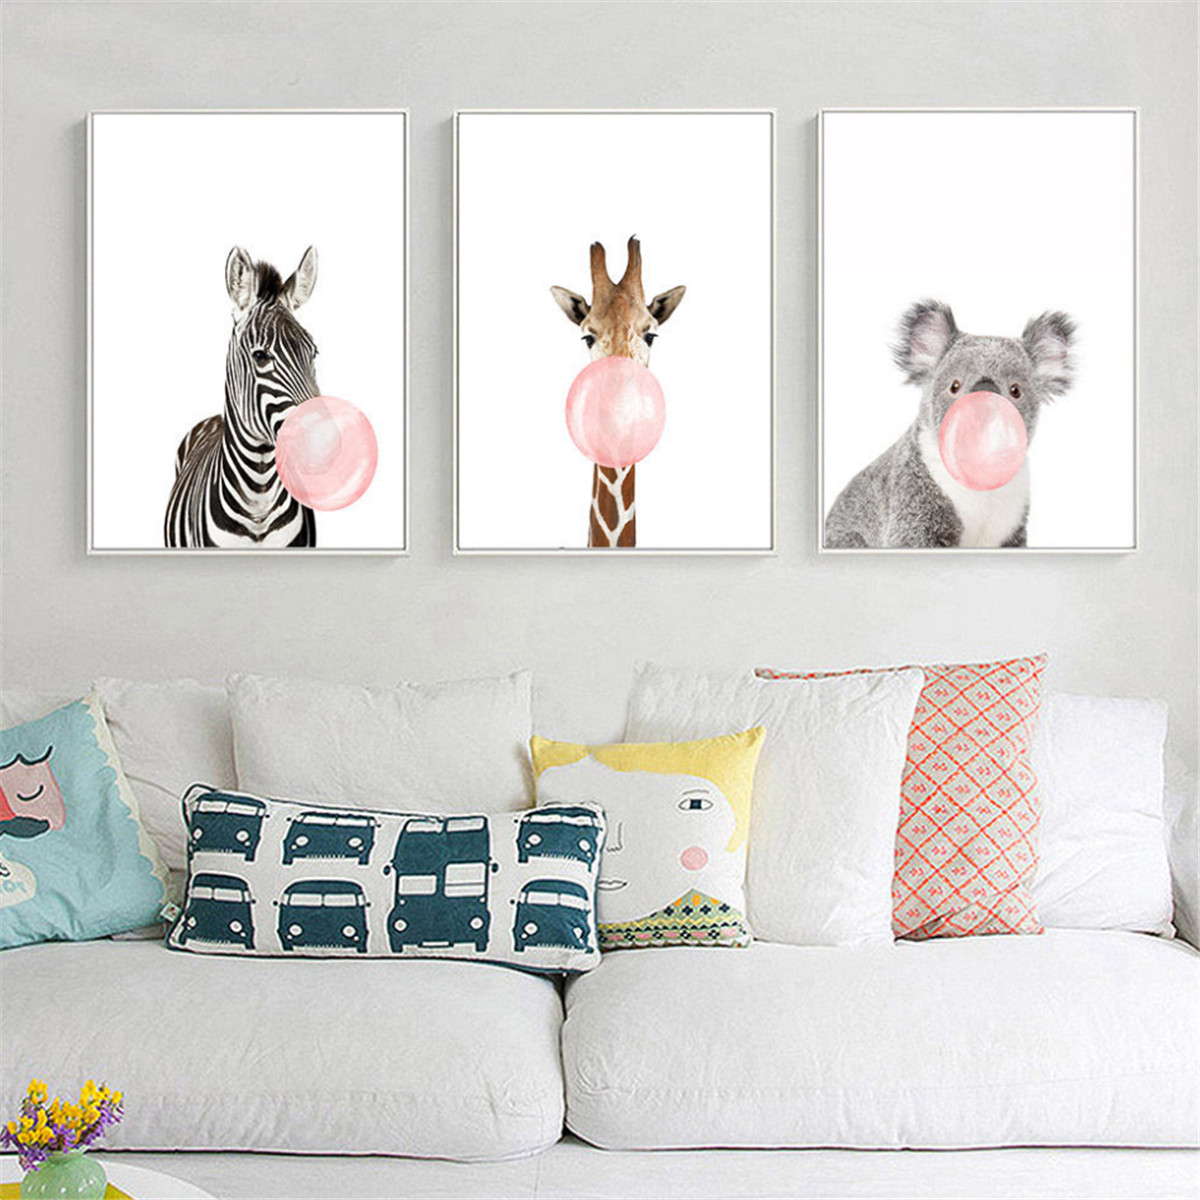 Animal Koala Giraffe Zebra Canvas Poster Nursery Wall Art ...